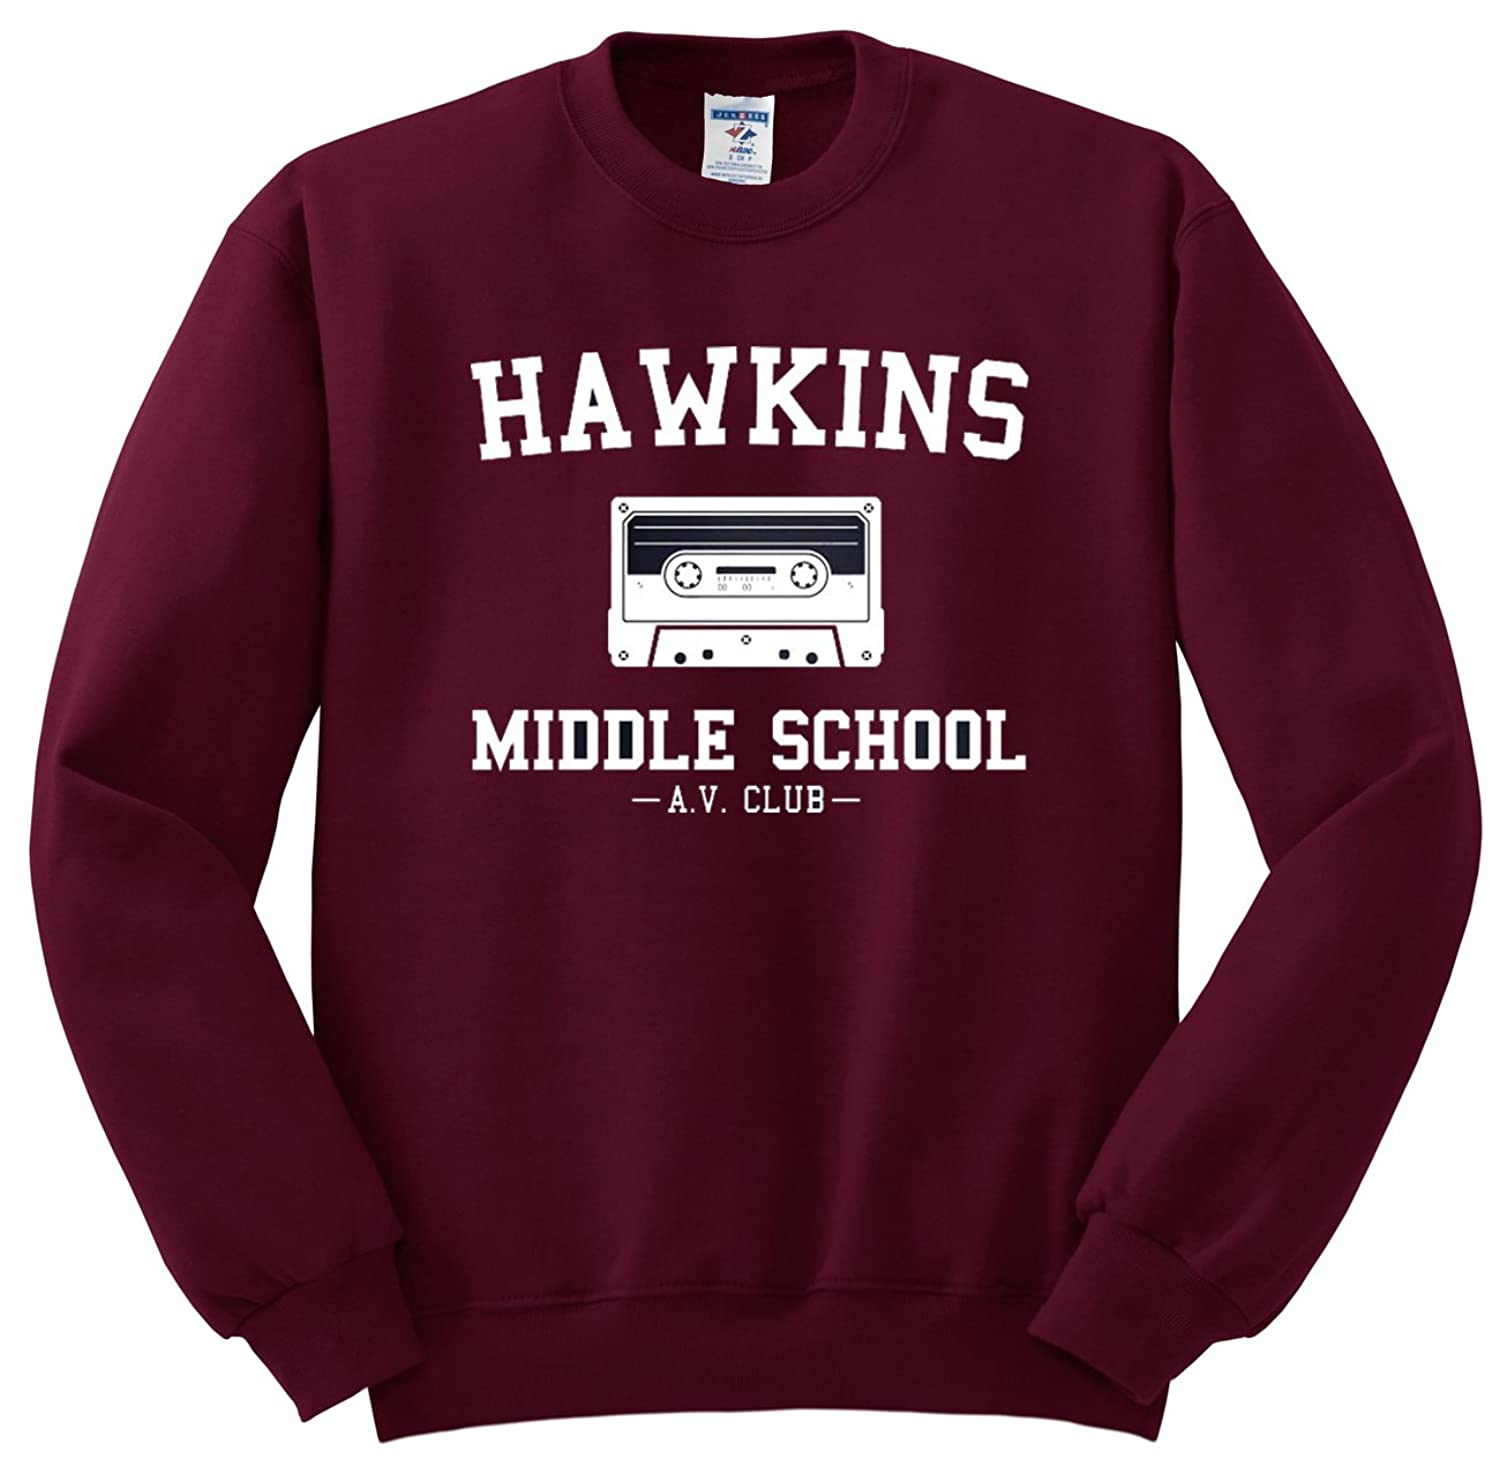 d56689a5a70c 85%OFF Hawkins Middle School AV Club Sweatshirt - Stranger Things Inspired  Sweater - Unisex Fit